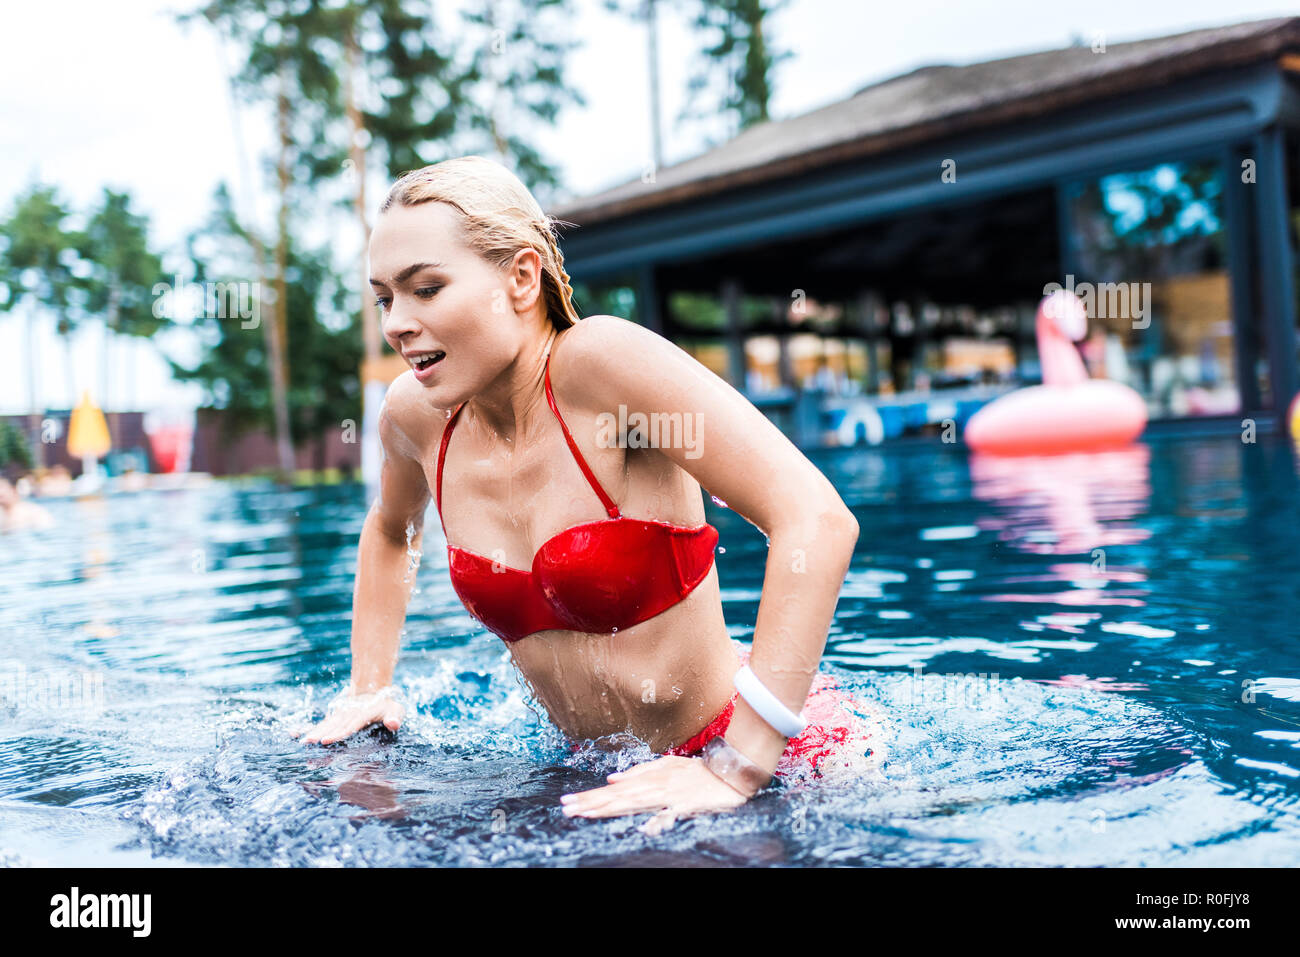 Young attractive smiling woman swimming in pool Photo Stock